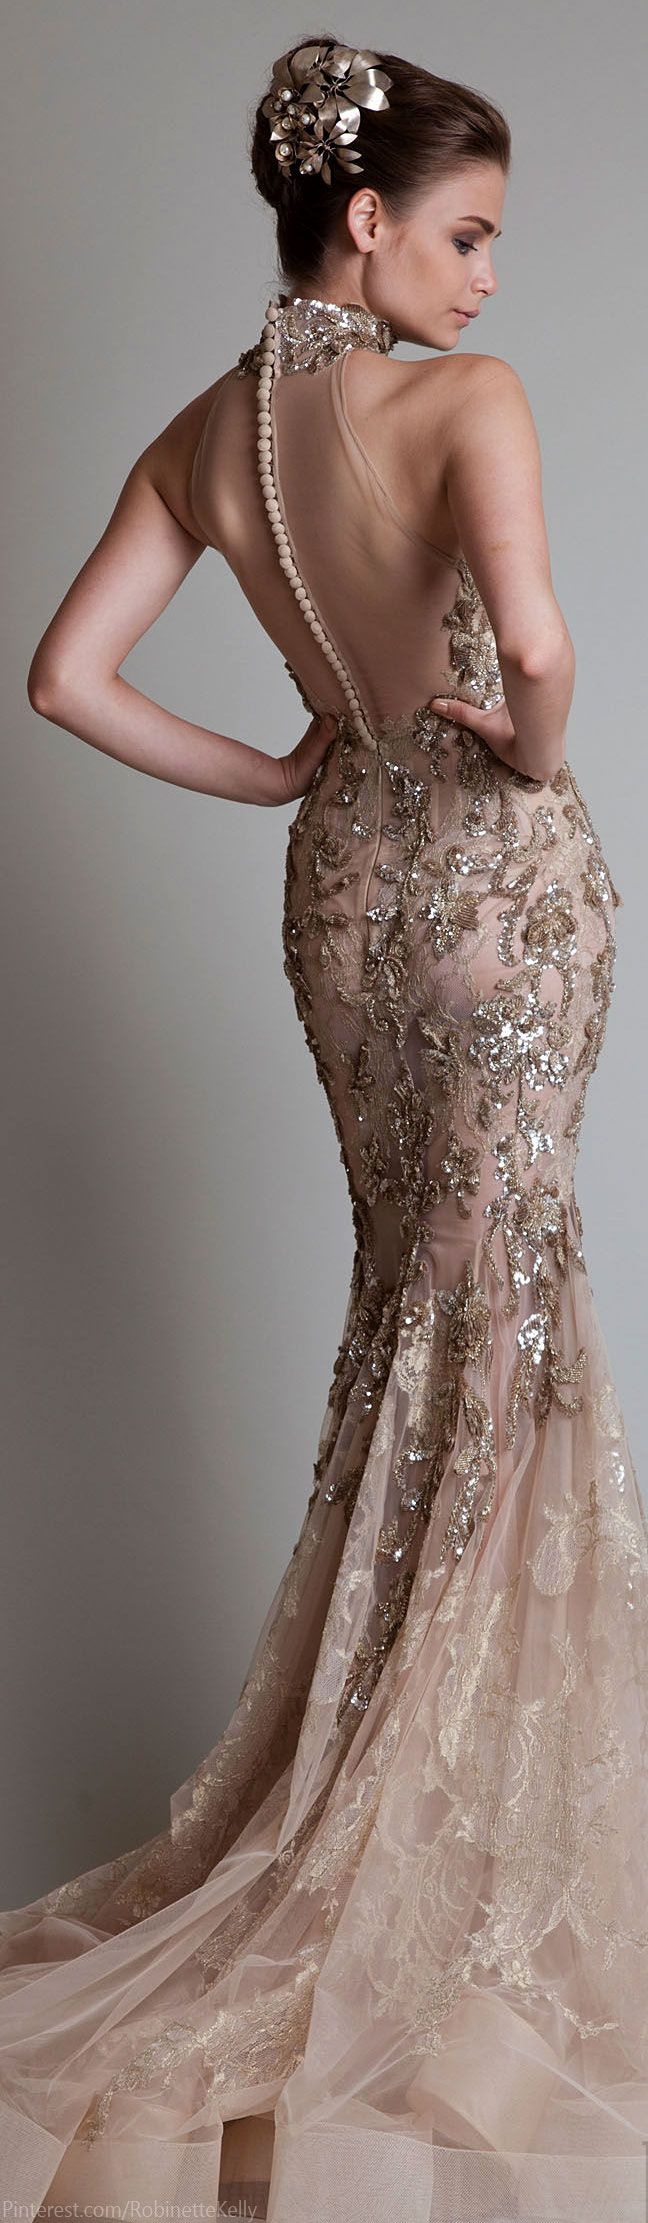 Krikor Jabotian Couture ~ 2014 - holy guacamole, i love this dress... R.